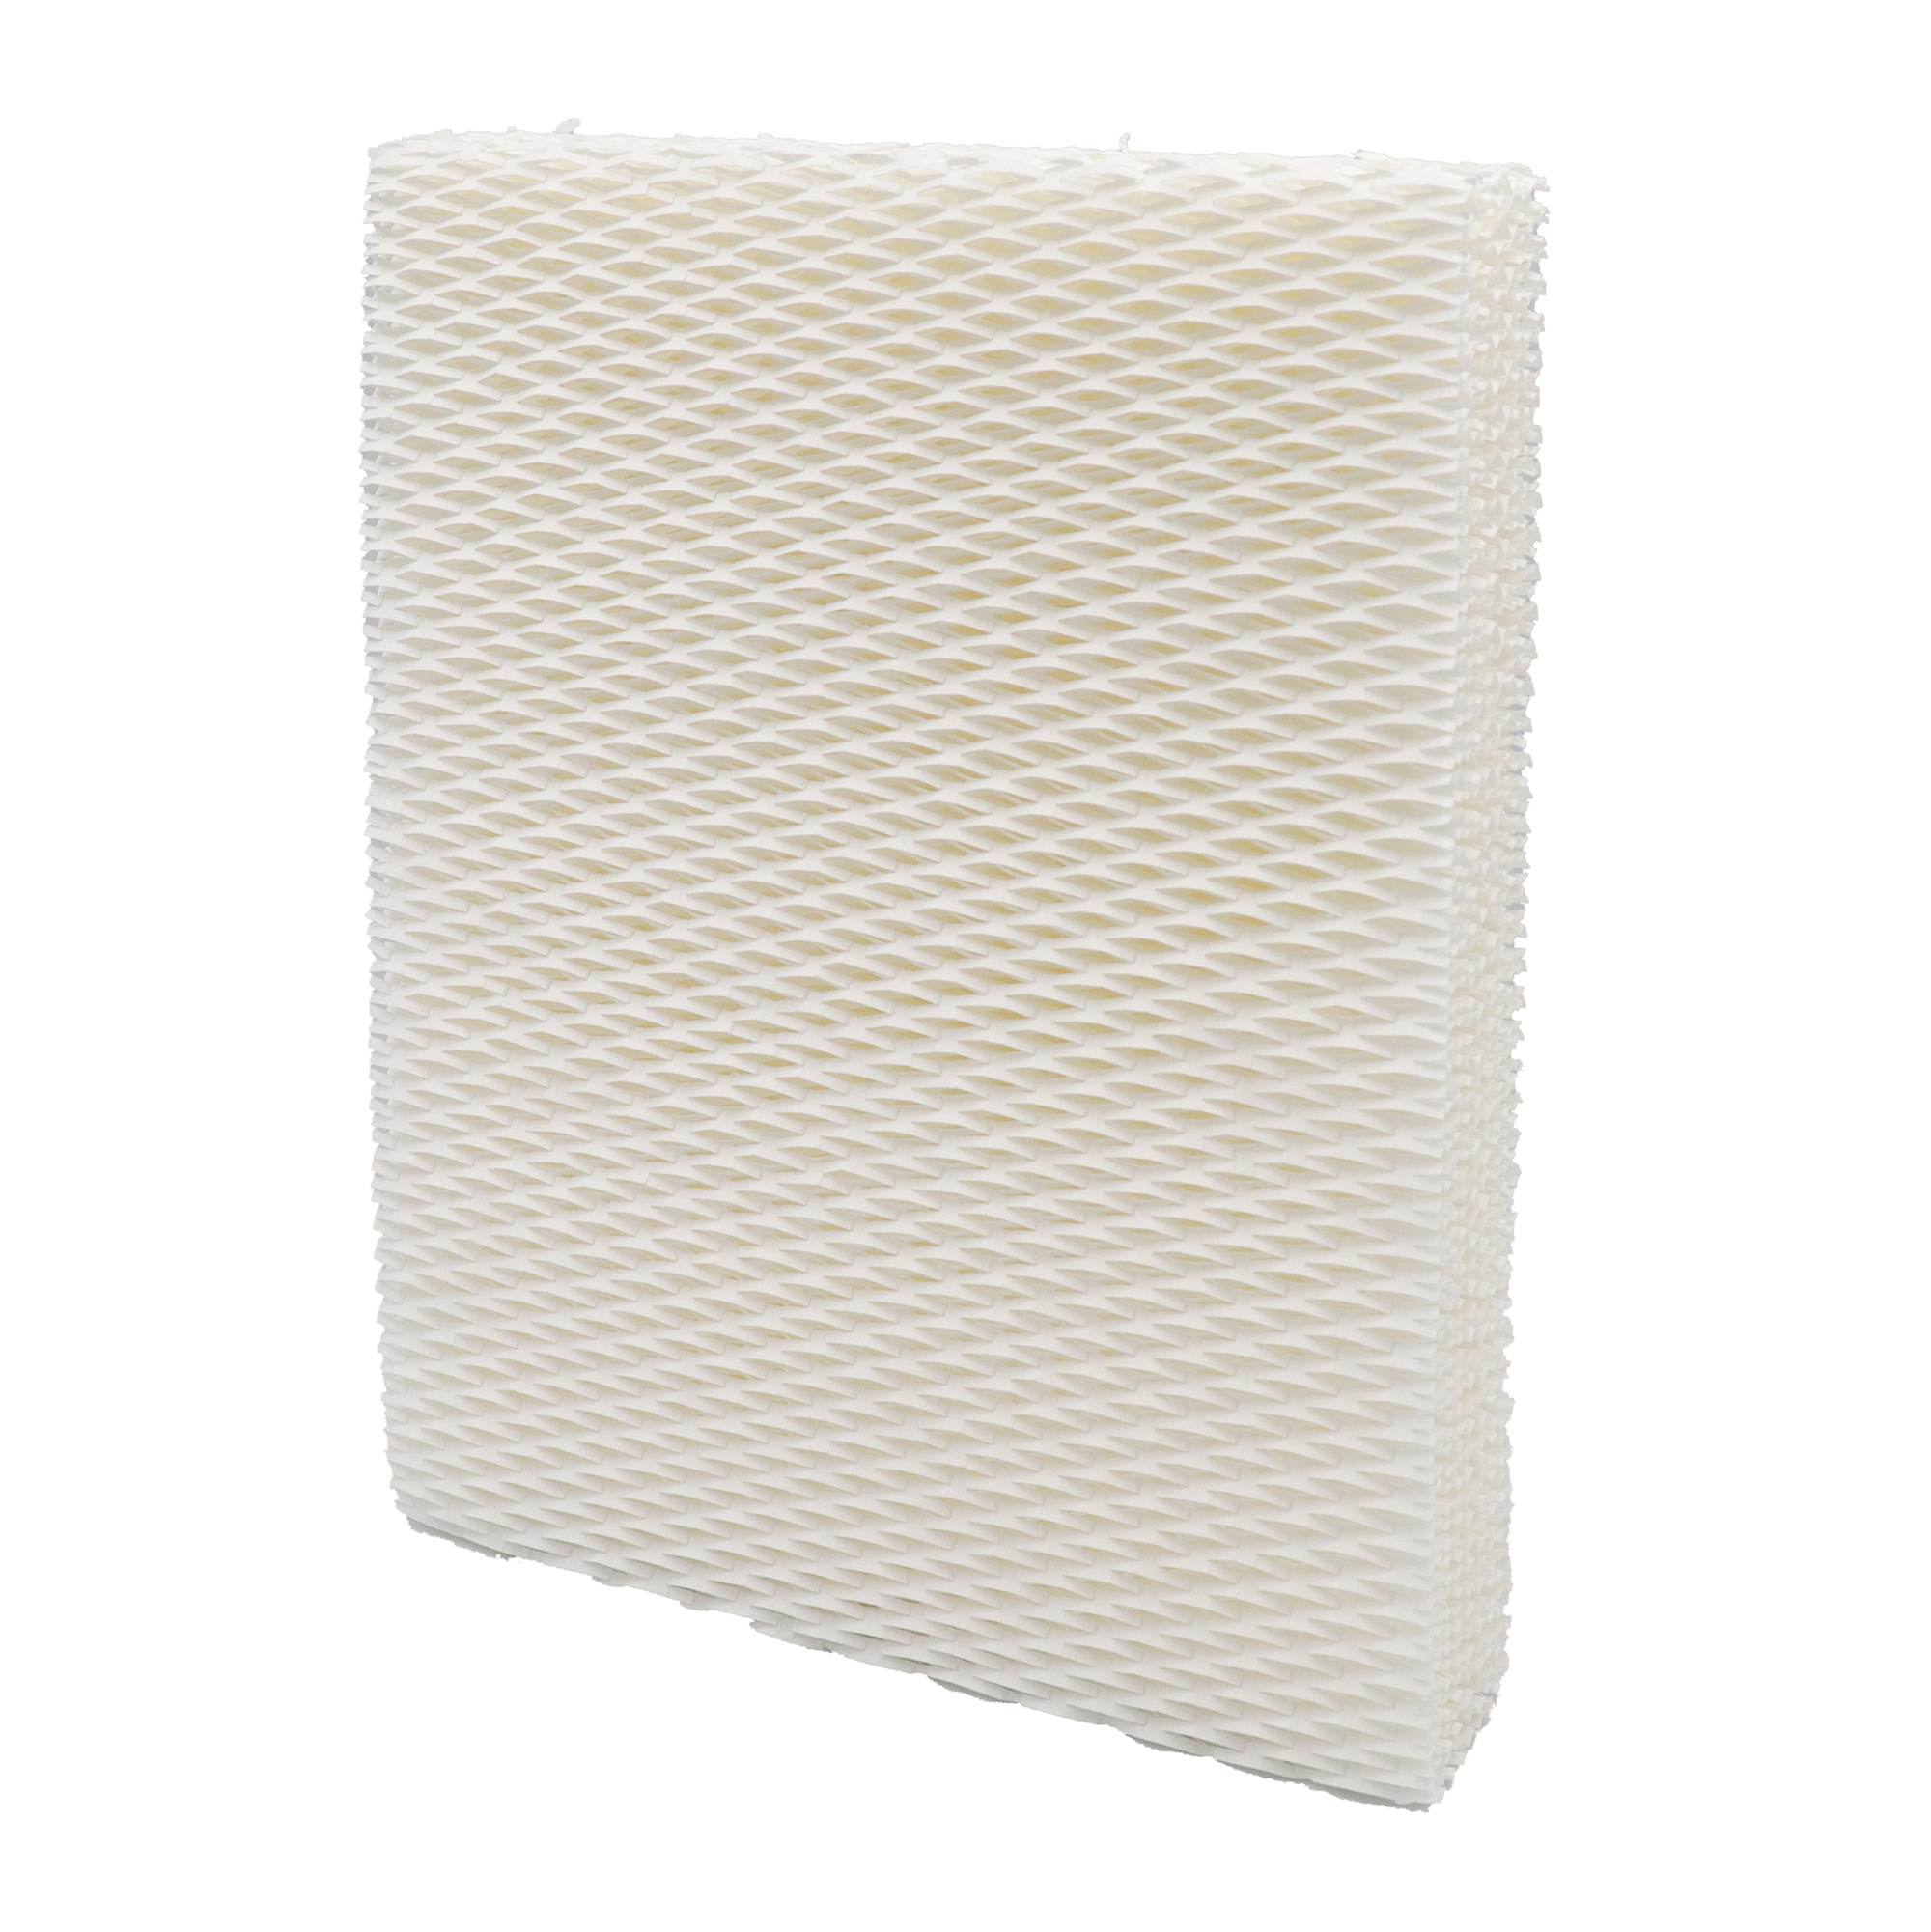 Humidifier Wick Filter Replacement For Vornado MD1-0002 Evap3 Evap2 Evap1 MD1-0001 Model 30